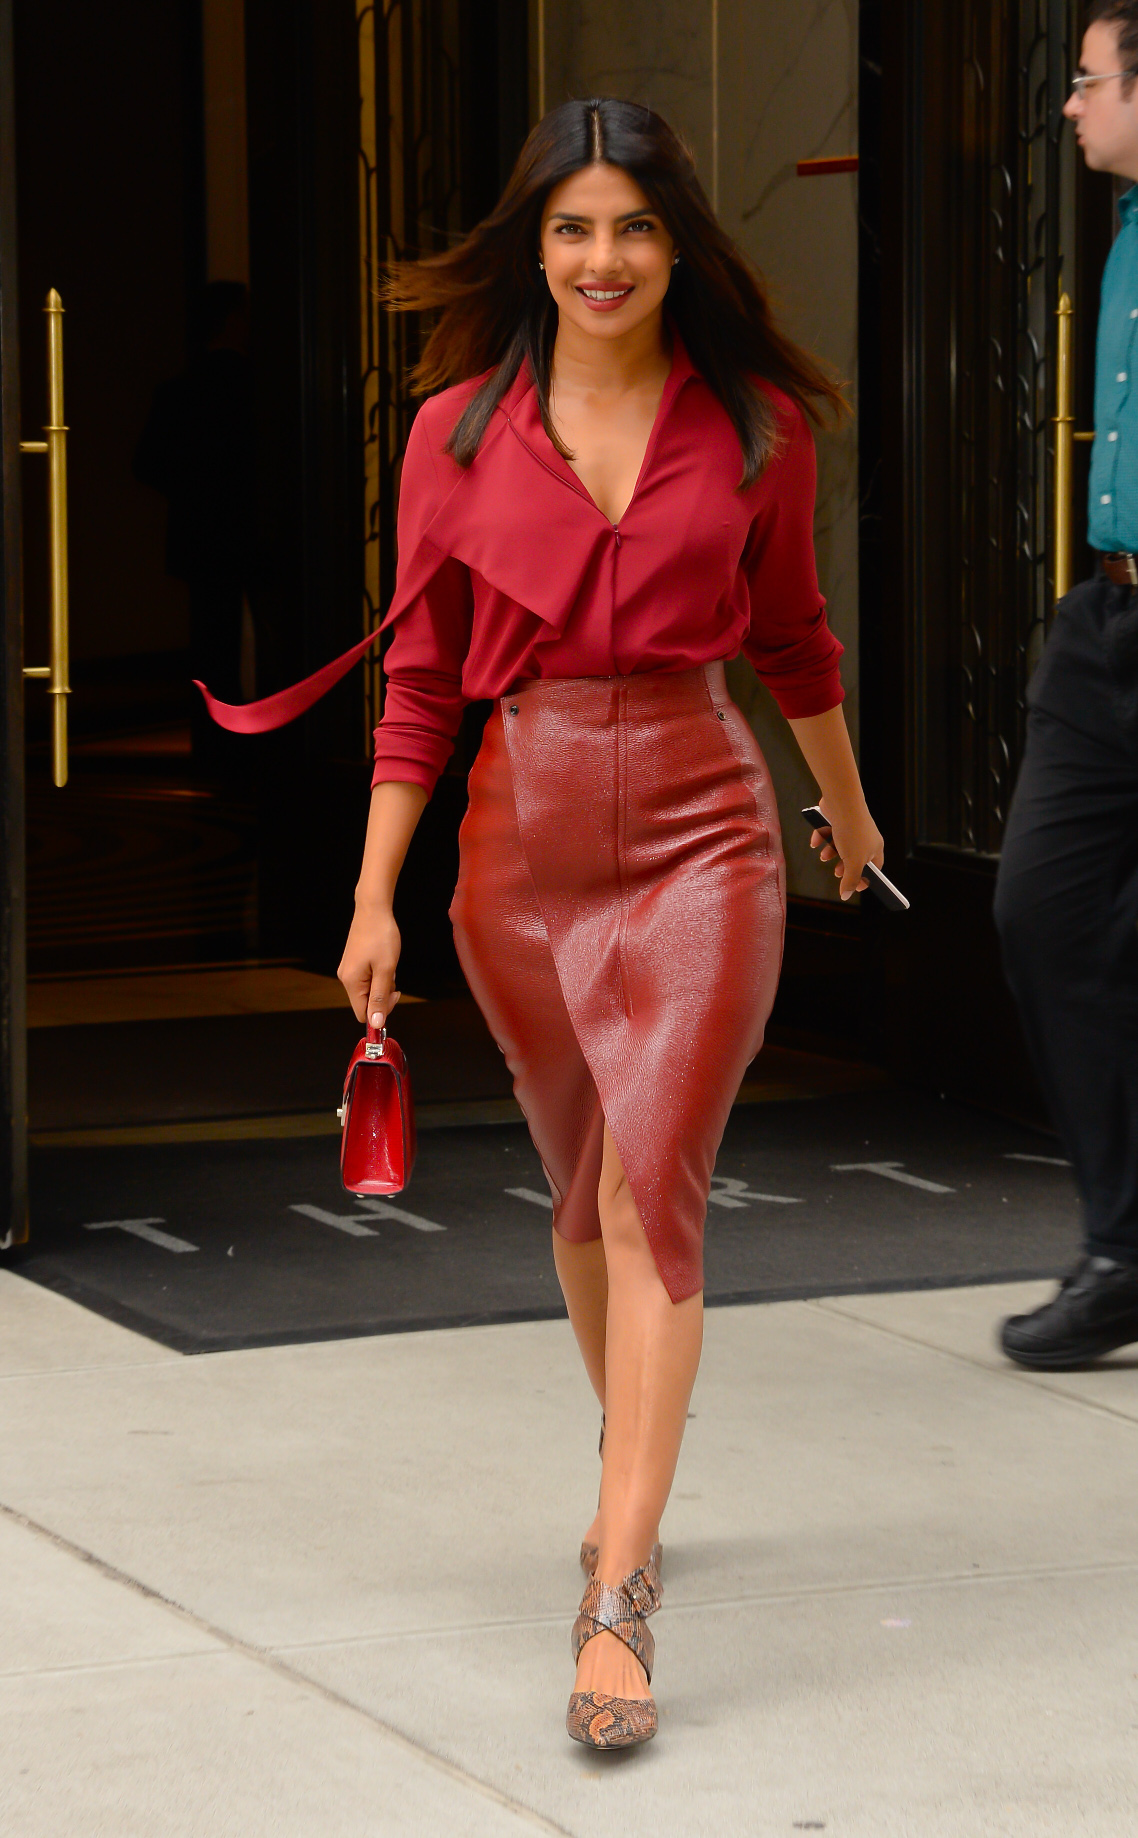 NEW YORK, NY - OCTOBER 09:  Actress Priyanka Chopra is seen walking in soho  on October 9, 2018 in New York City.  (Photo by Raymond Hall/GC Images)